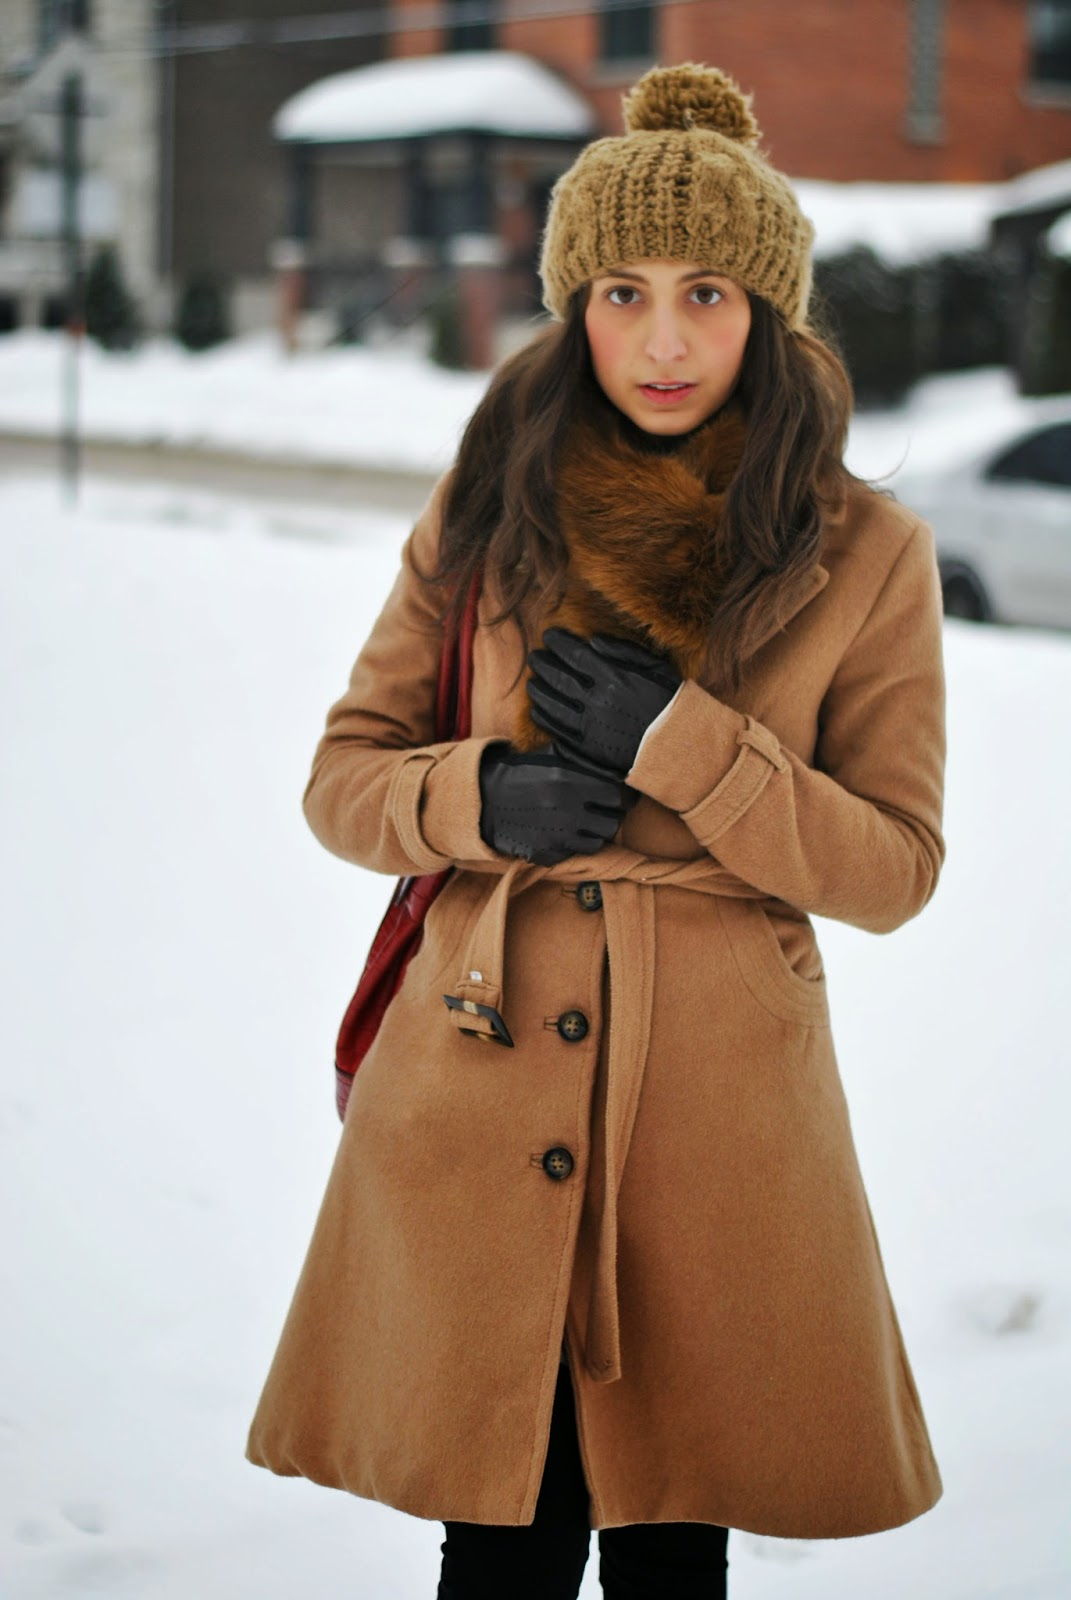 beige winter trench tuque brown booties fashion red handbag fur scarf leather gloves